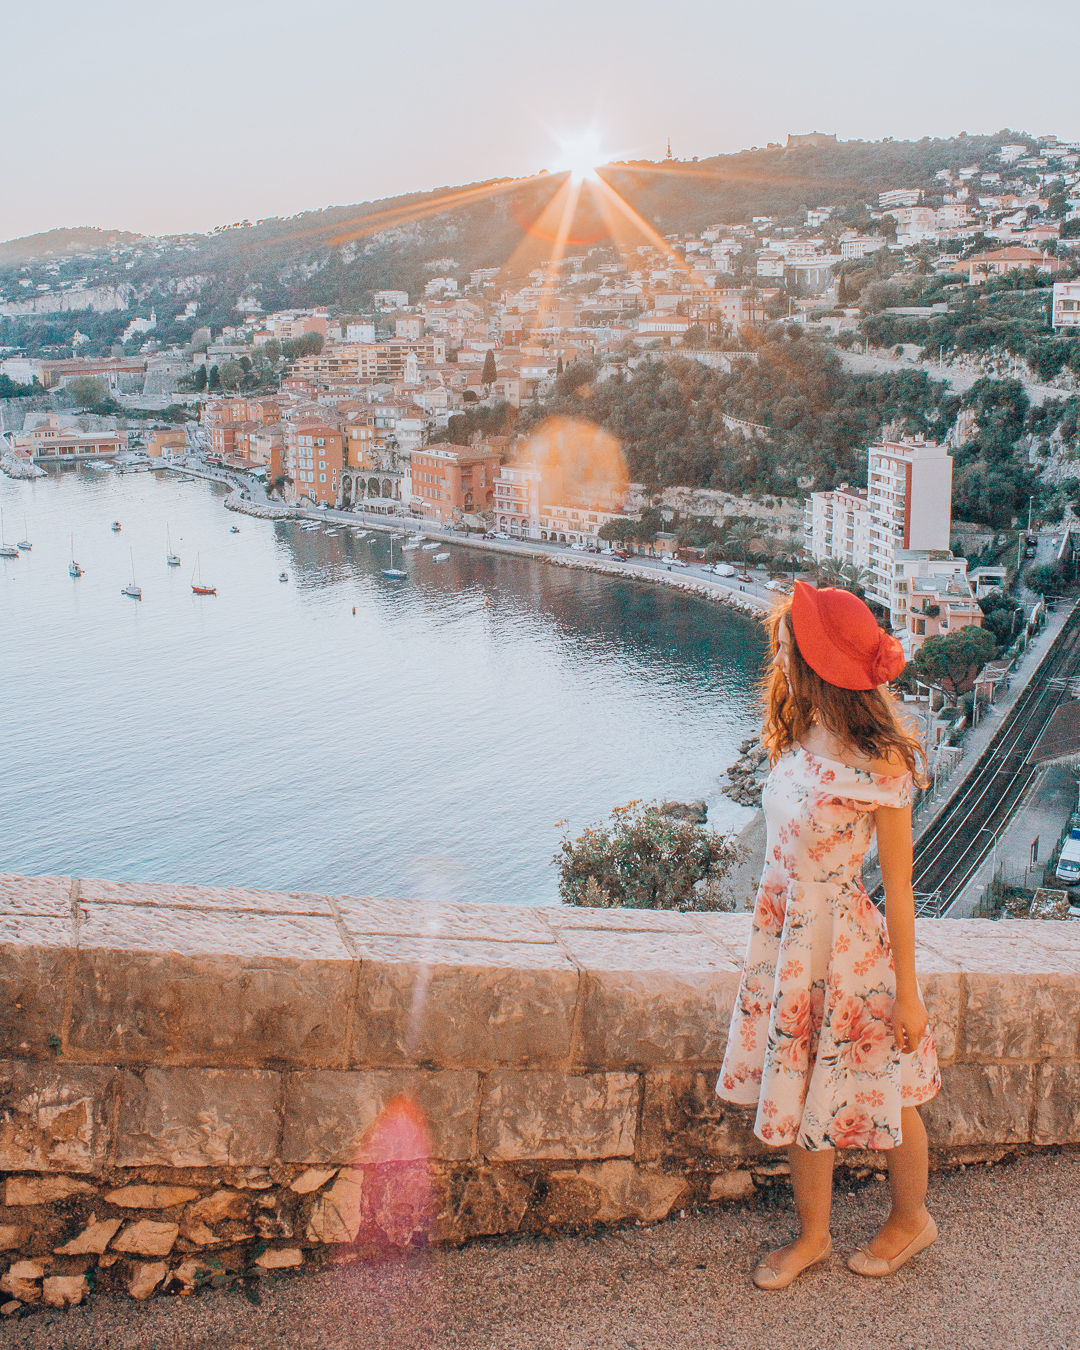 Viewpoint in Villefranche-sur-Mer